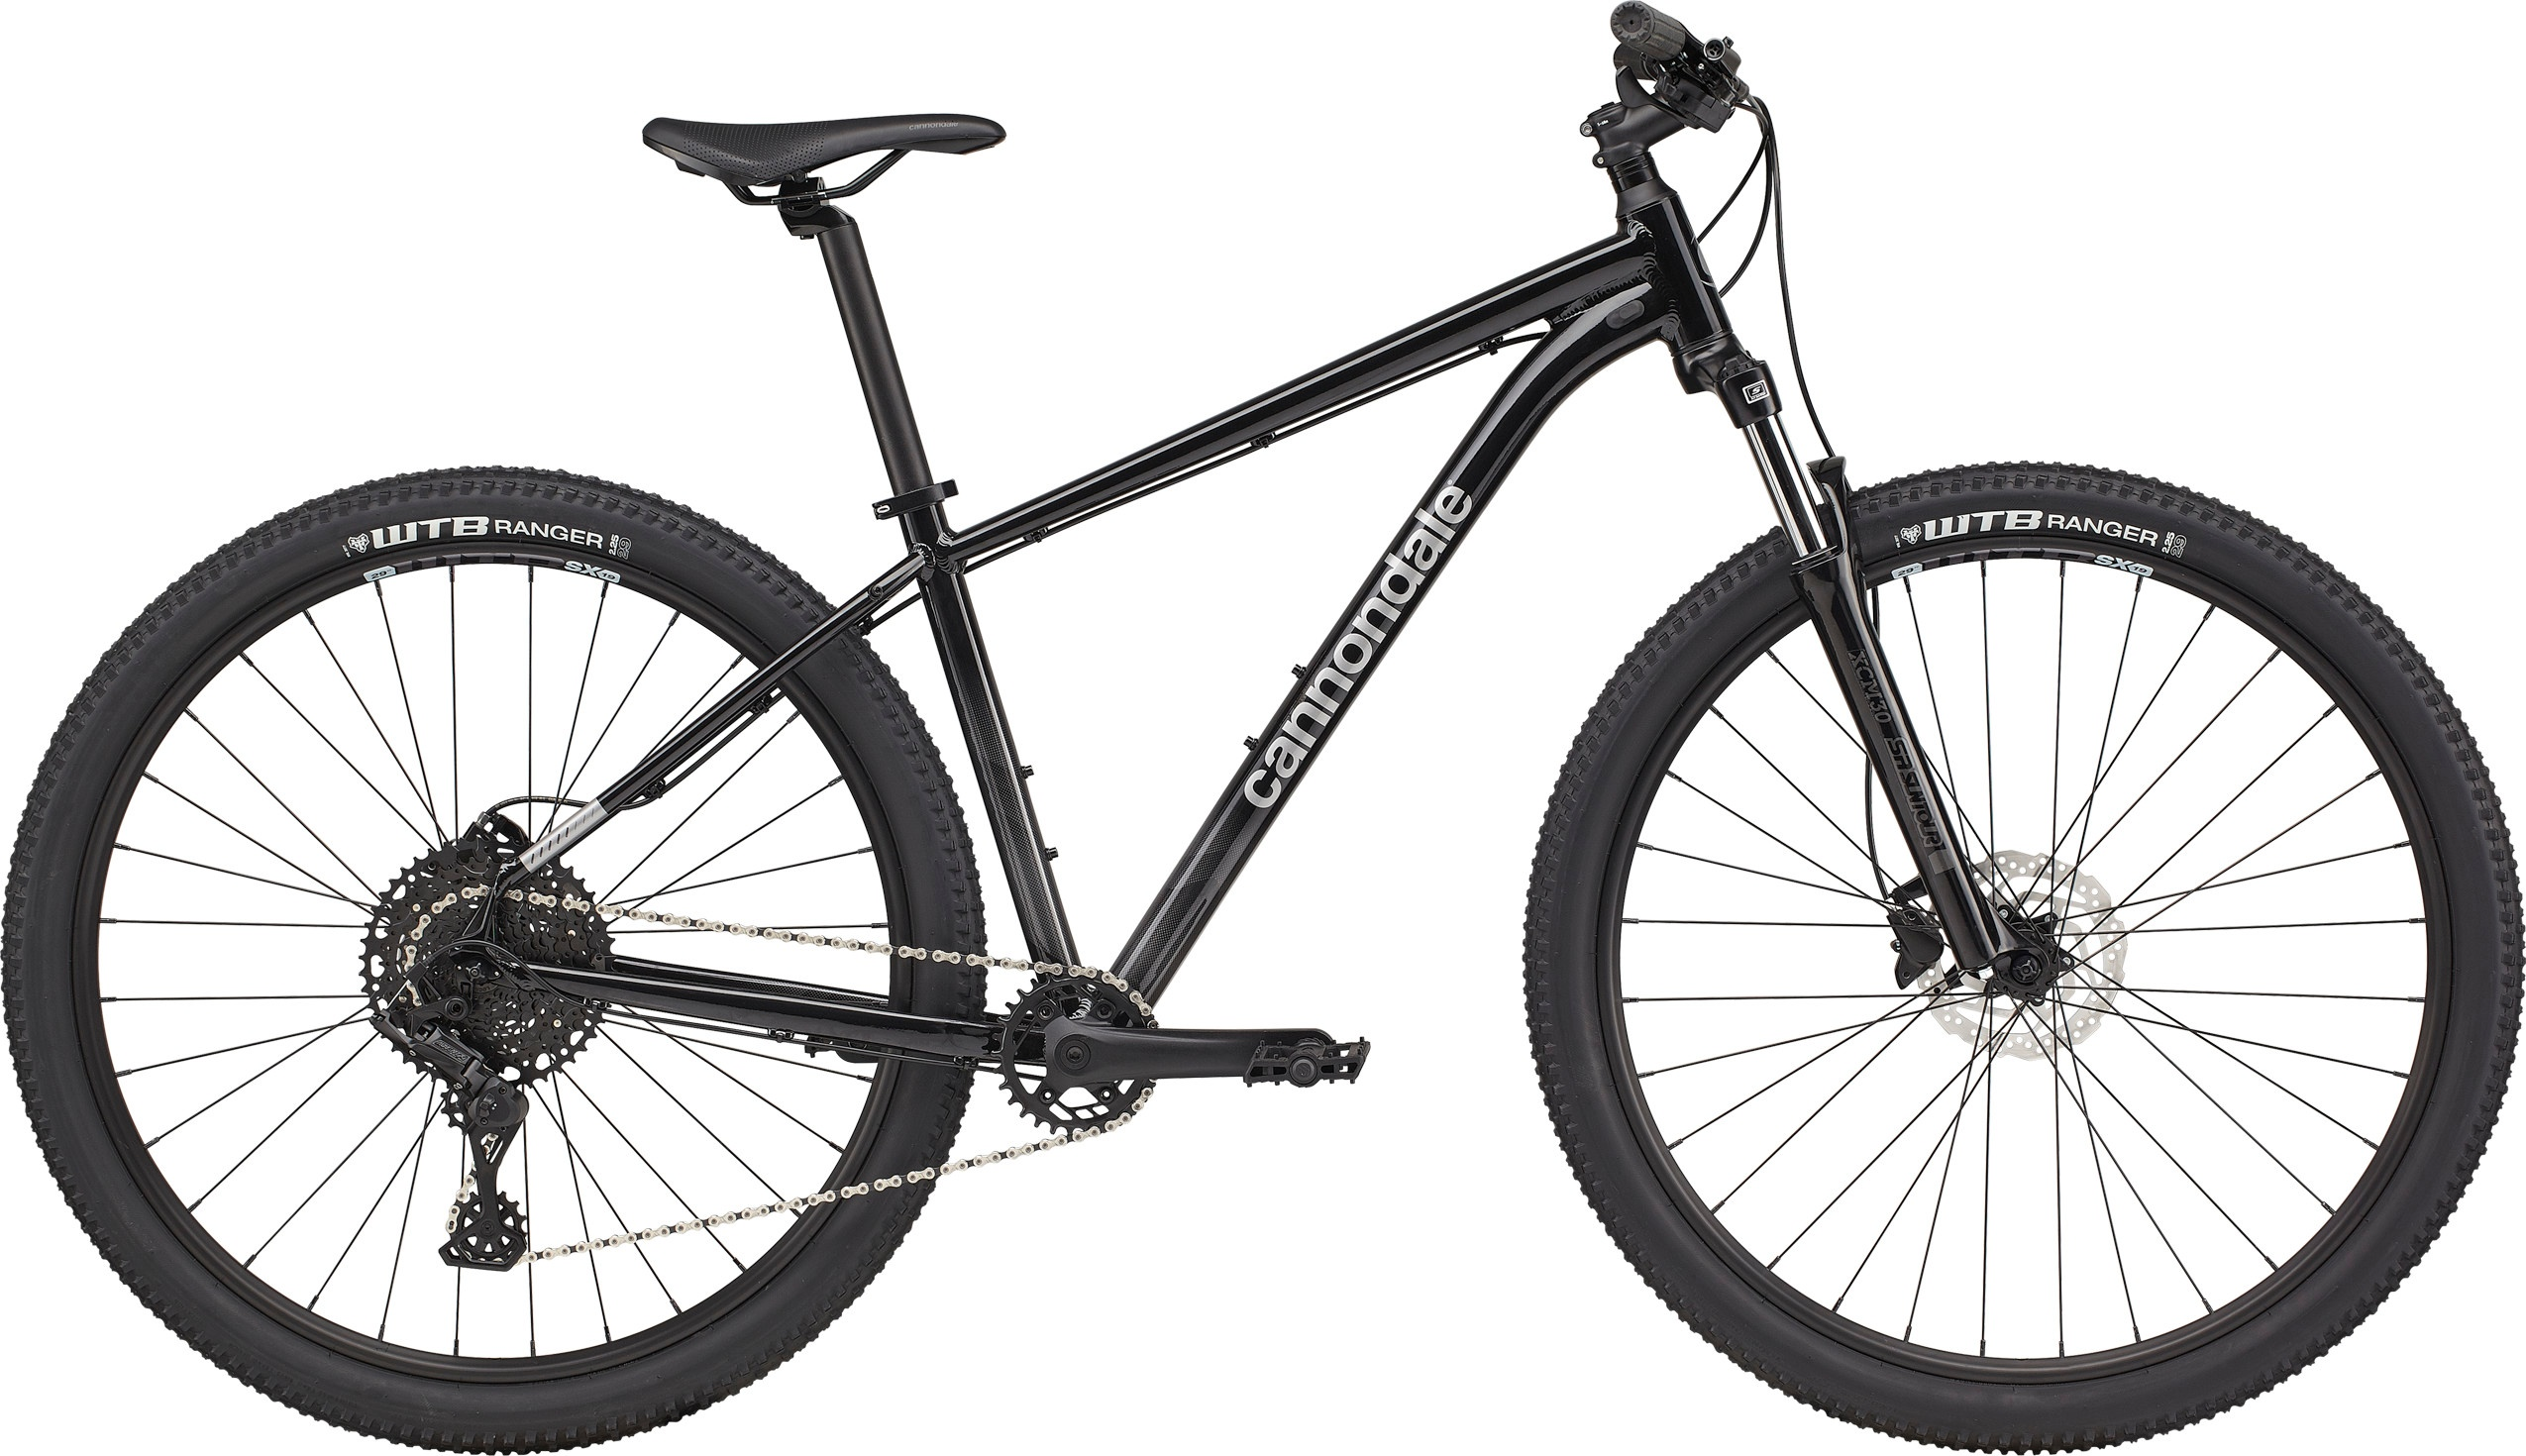 Cannondale Cannondale Trail 5 2021 - Sort Cykler > Mountainbikes > Hardtail